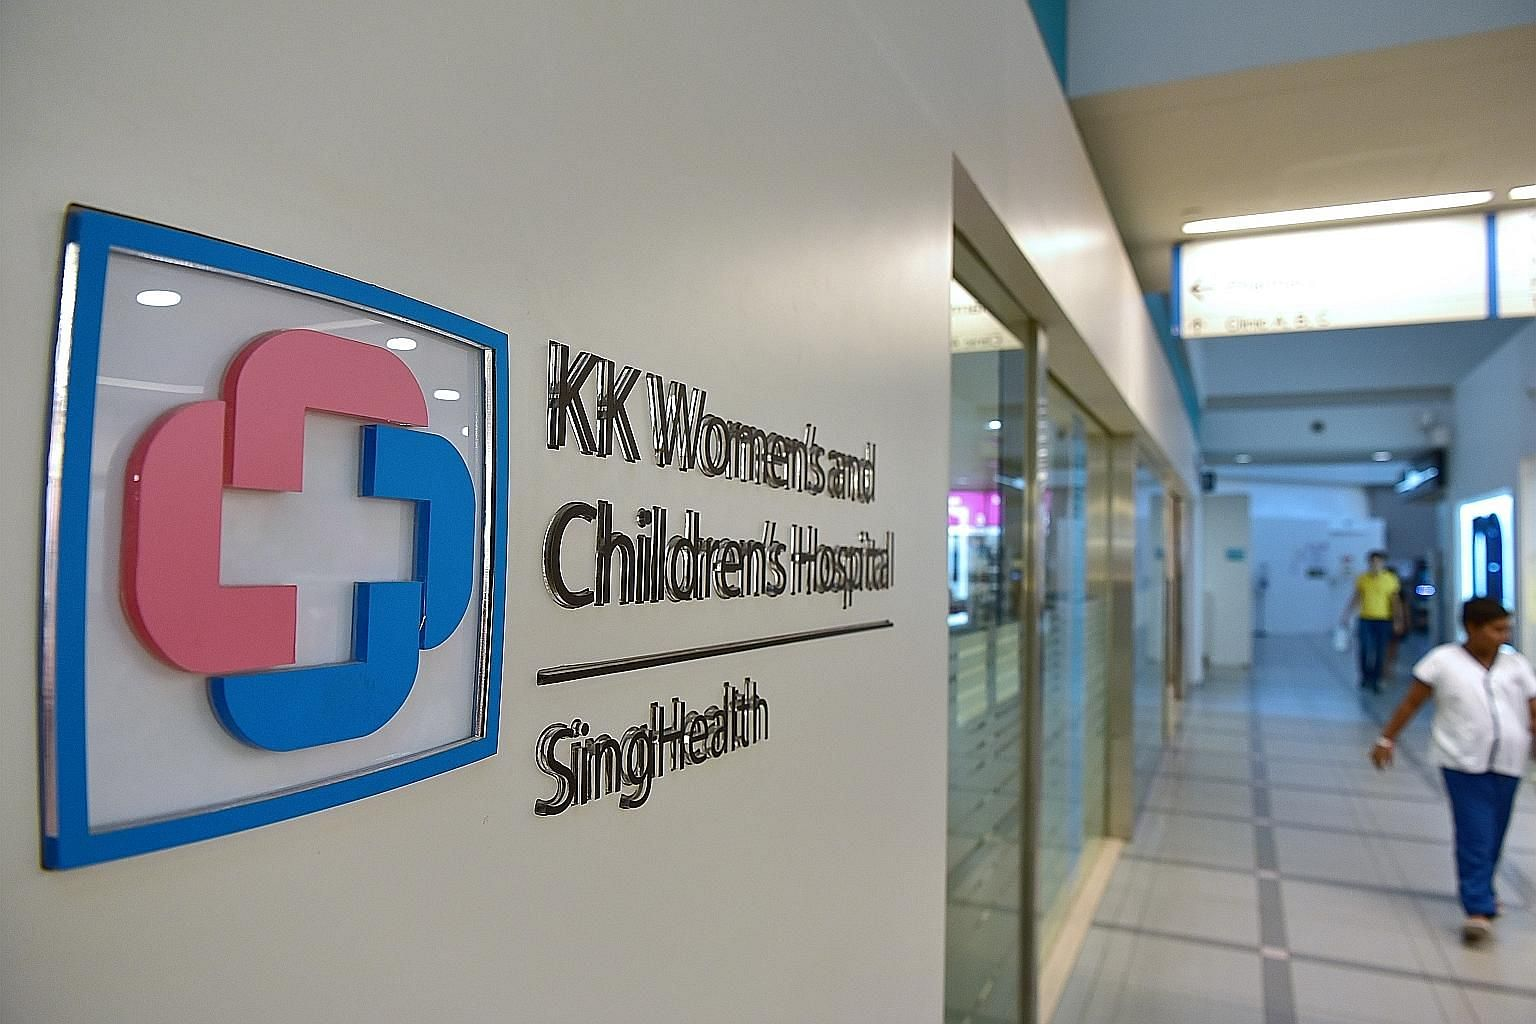 The Ministry of Health has advised medical practitioners to refer potential cases who present with clinical features suggestive of Kawasaki-like symptoms to the Children's Emergency department at KK Women's and Children's Hospital and the National Un